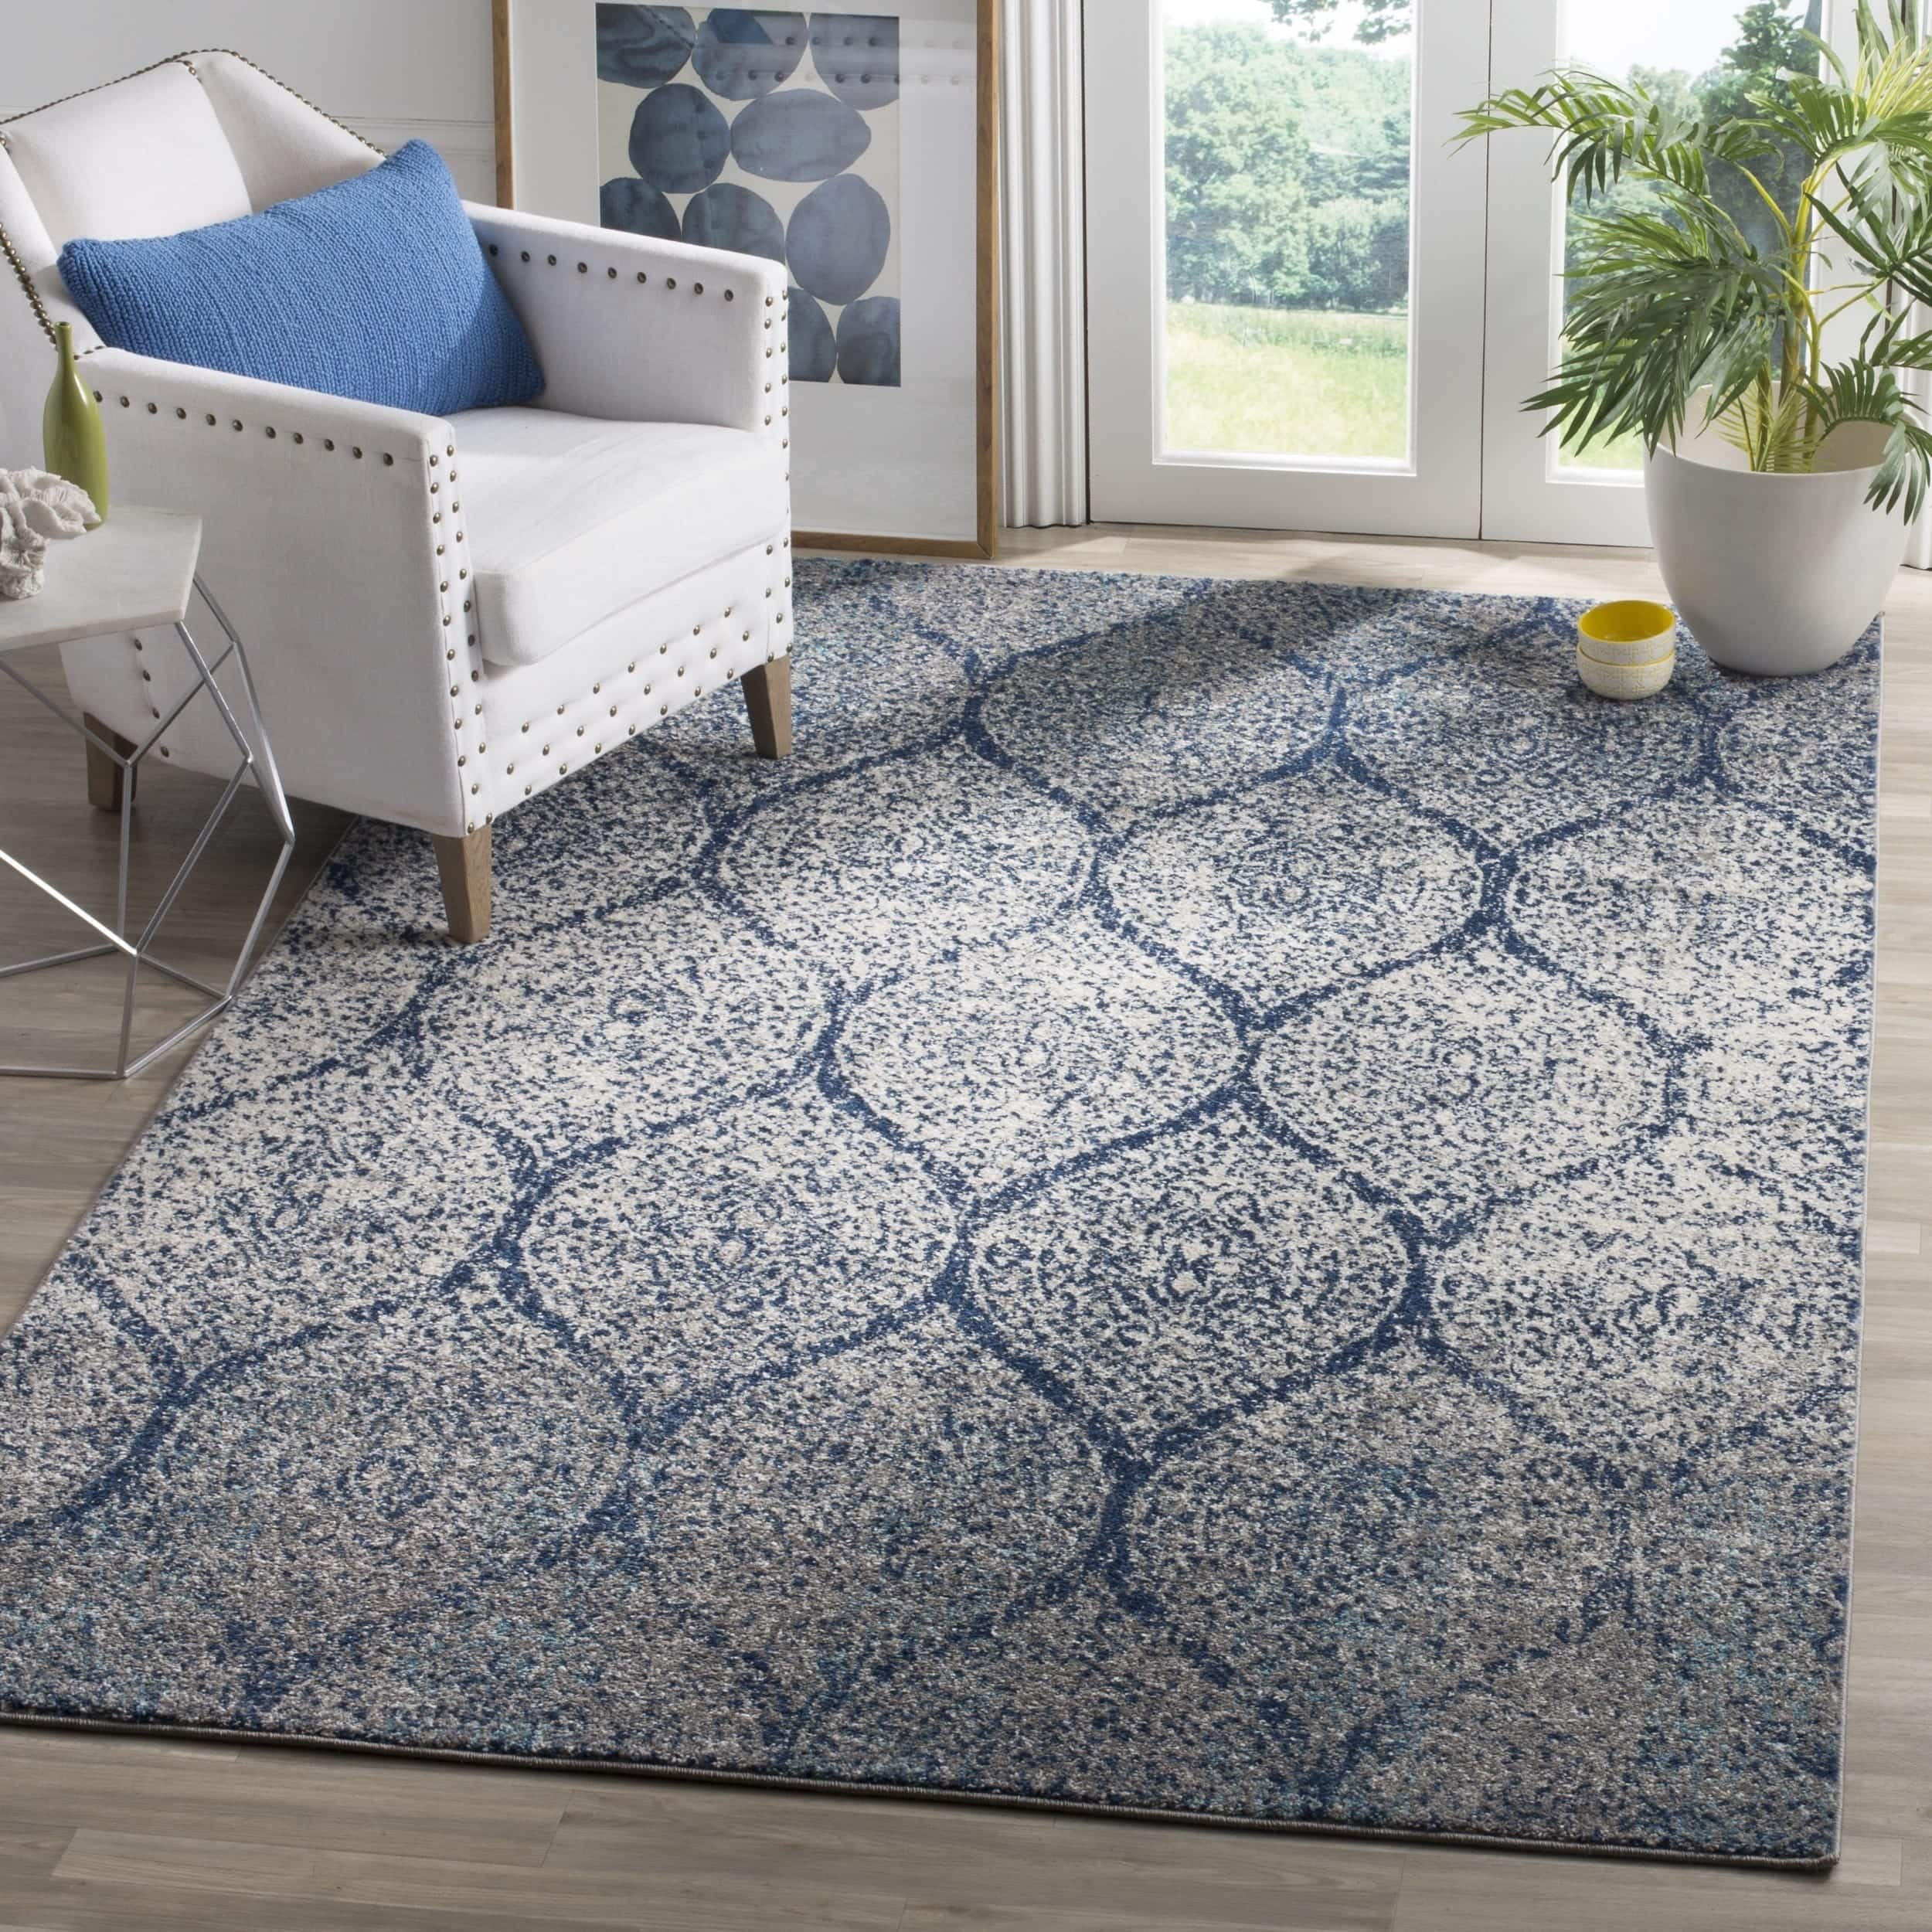 Safavieh 8' x 10' Madison Vintage Navy/ Silver Distressed Rug $149.98